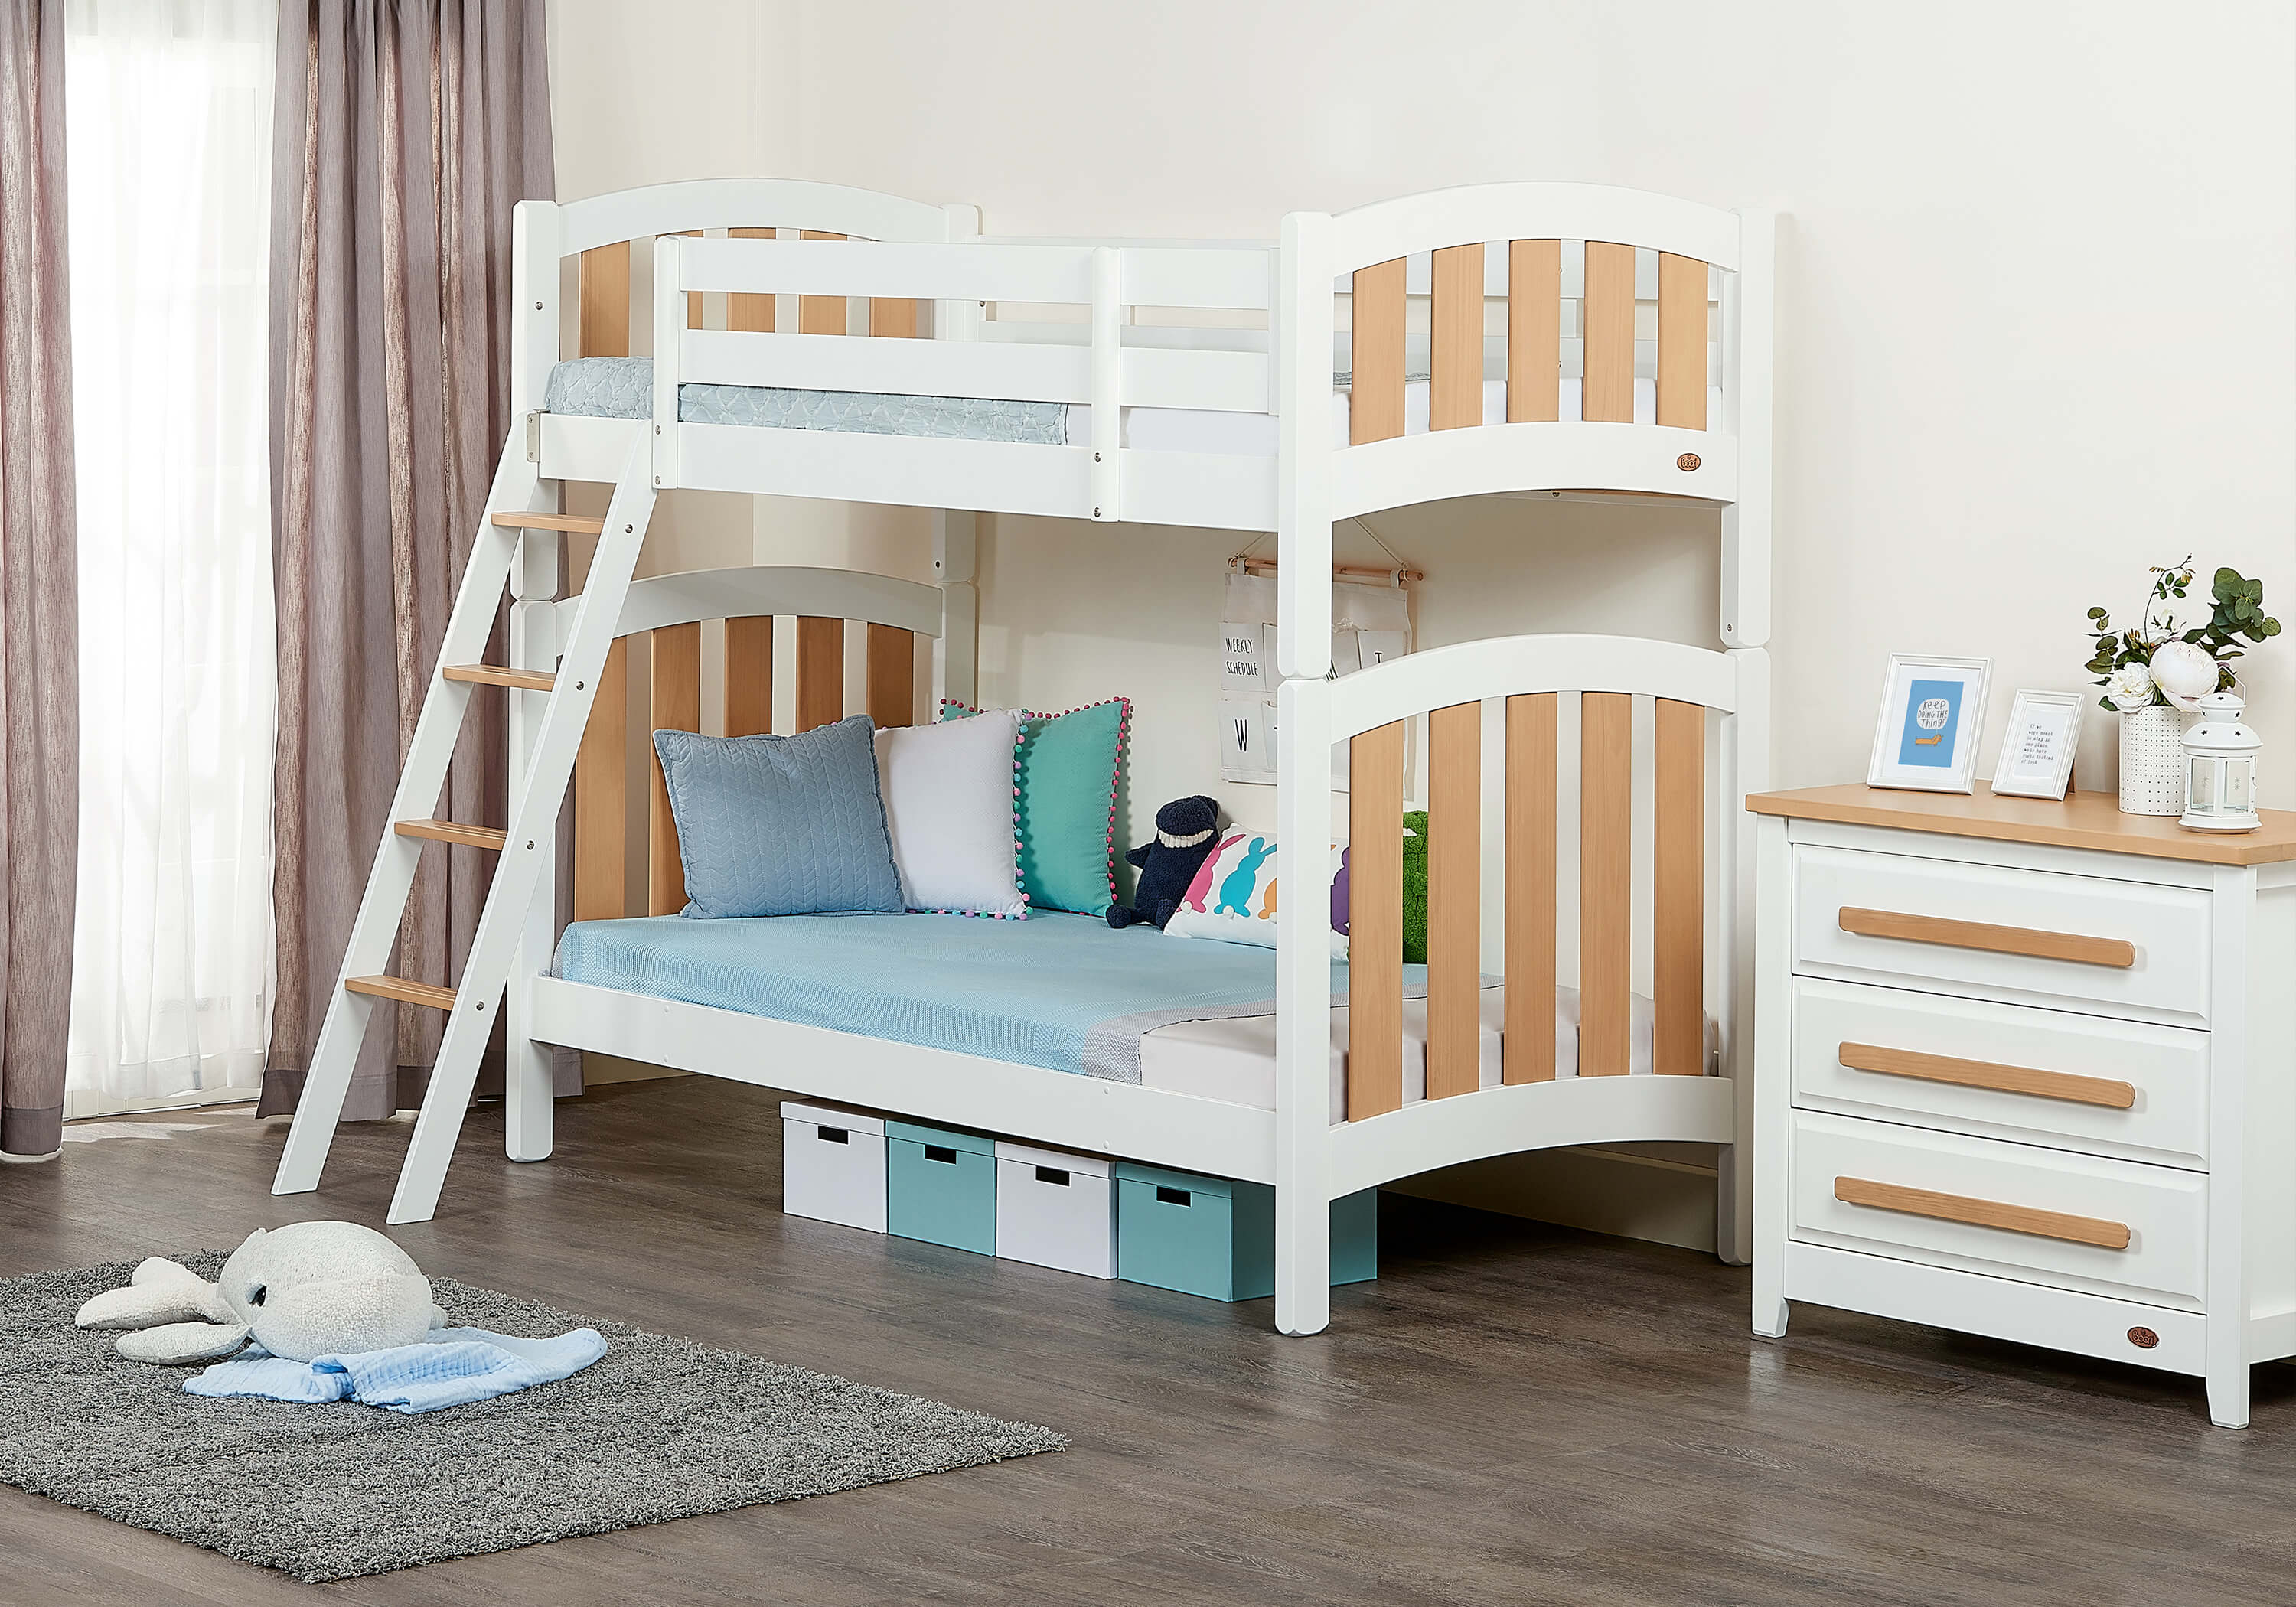 Picture of: Milano King Single Bunk Bed Boori